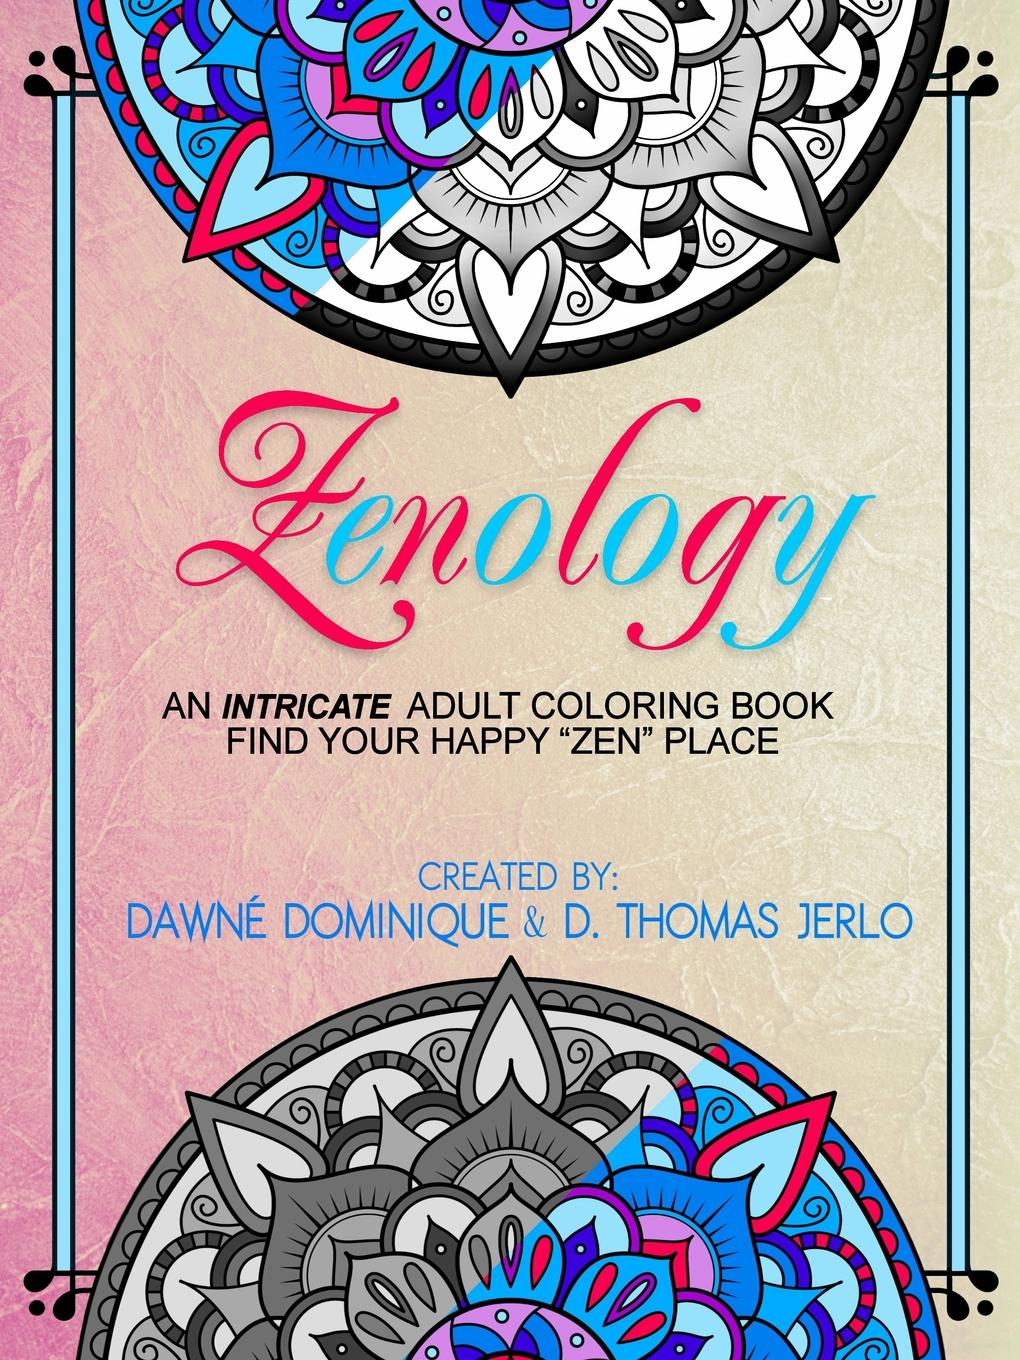 Dawné Dominique, D. Thomas Jerlo Zenology, Adult Coloring Book bjarne toft graph edge coloring vizing s theorem and goldberg s conjecture